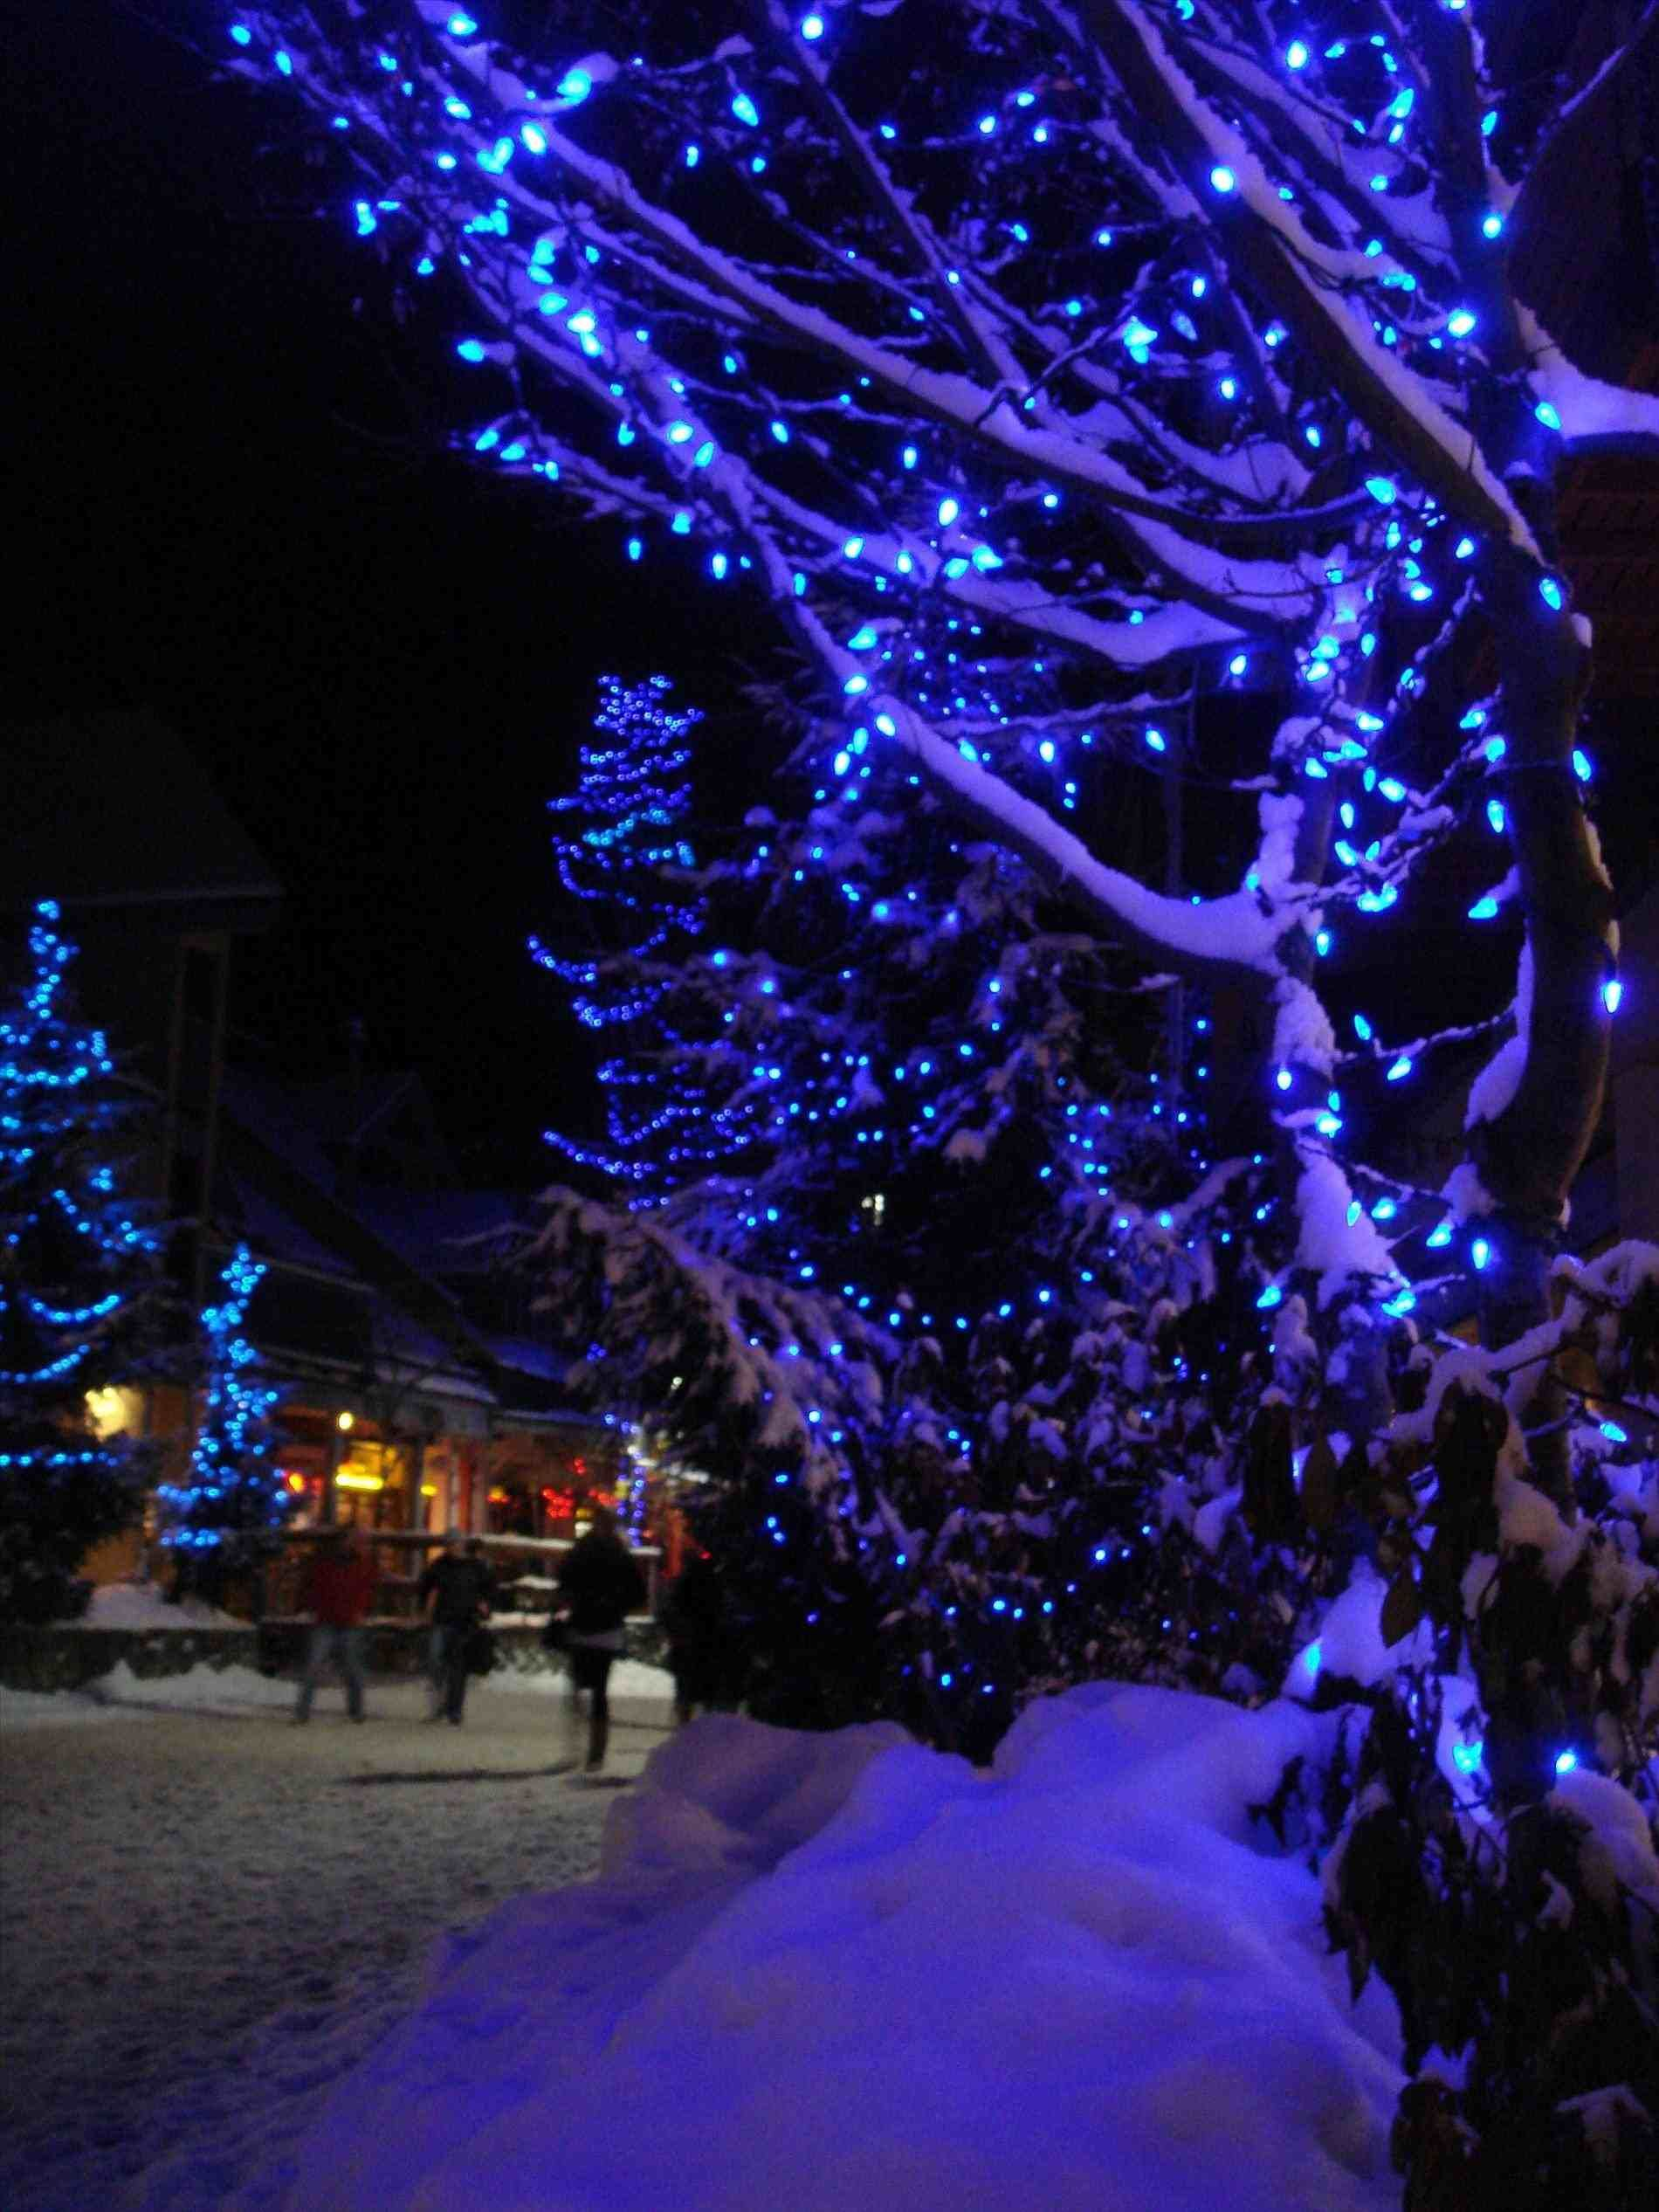 New Post Blue Christmas Tree Lights Interesting Visit Xmastsite